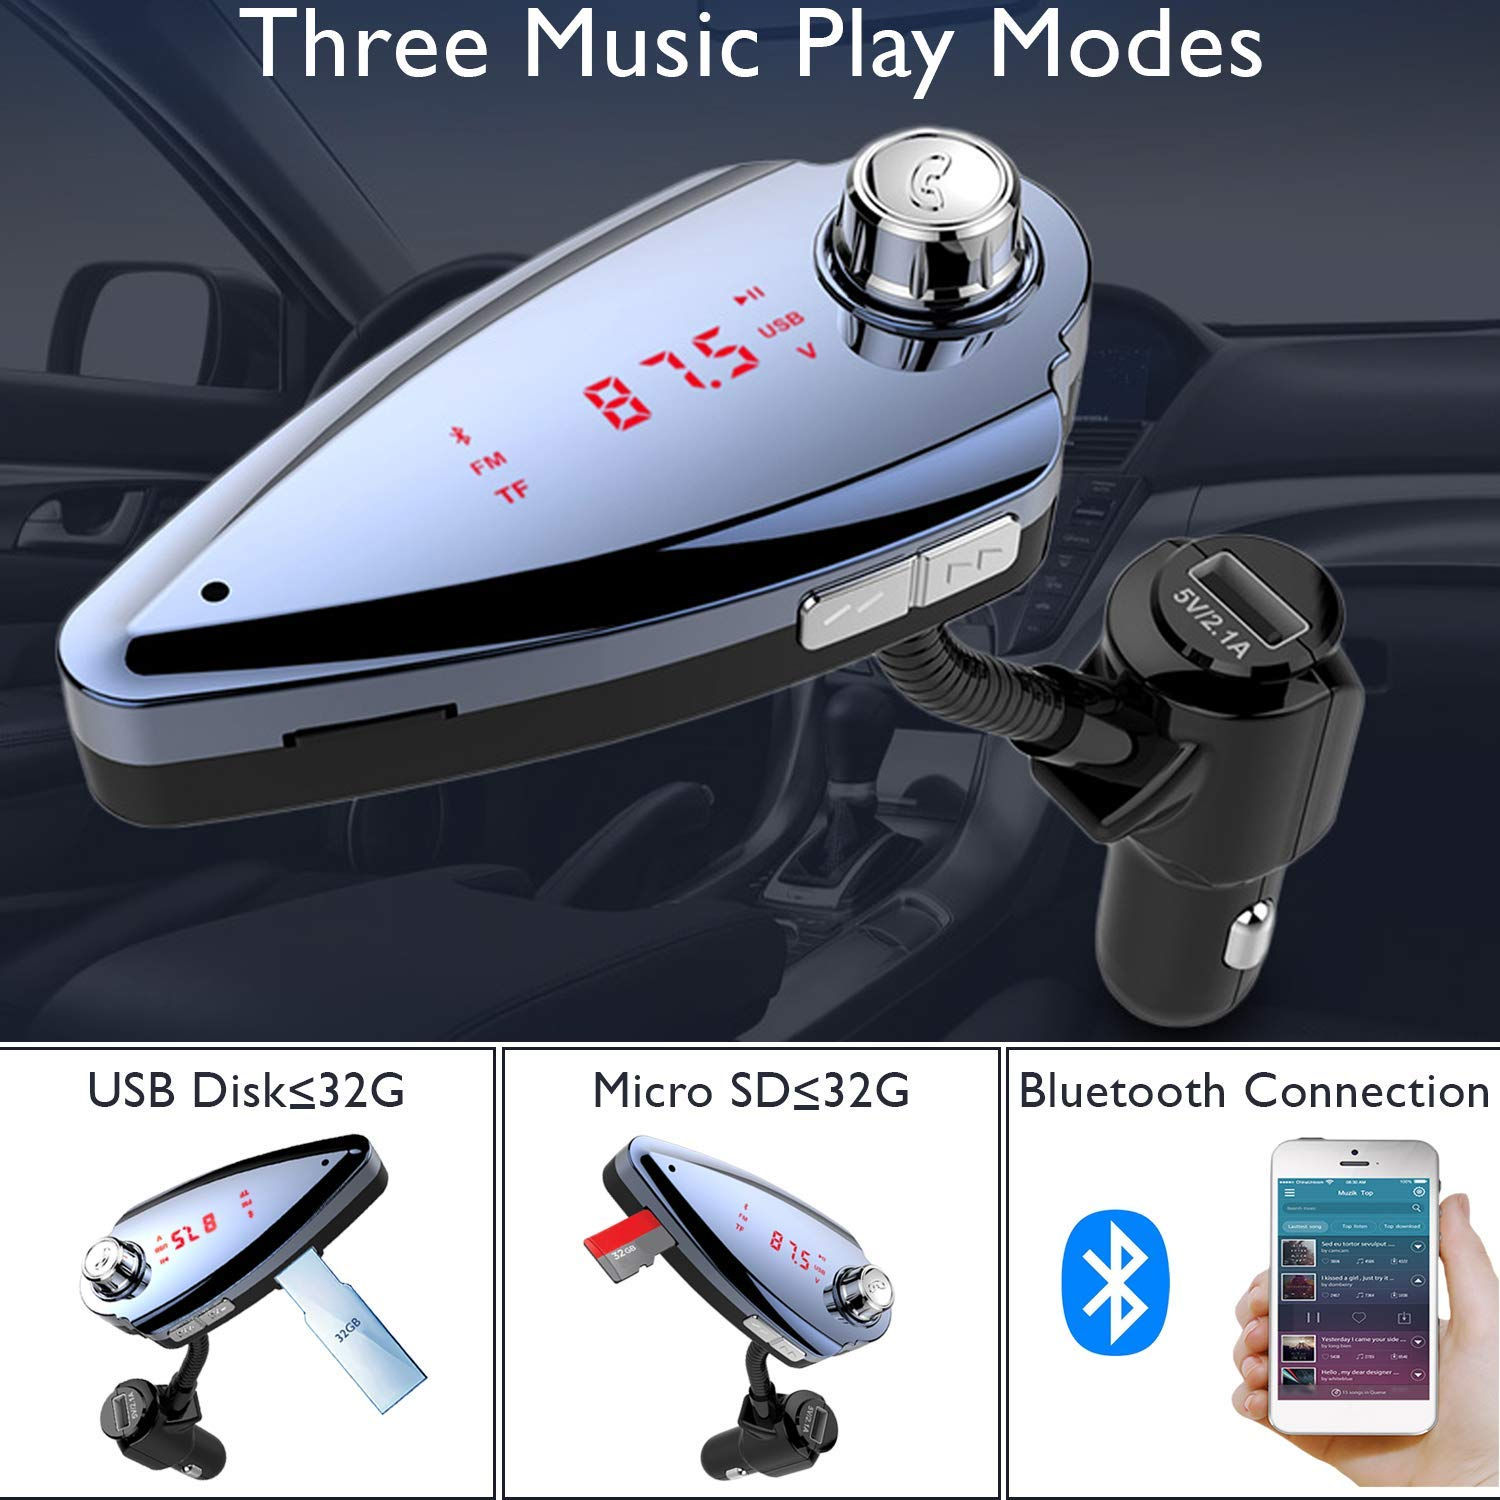 USB Port PeakAge S6 Bluetooth mp3 Audio Player for Car with Multifunction/'s FM Transmitter with Dual USB Output Charging Port Hands Free Call and SD//TF Card Support